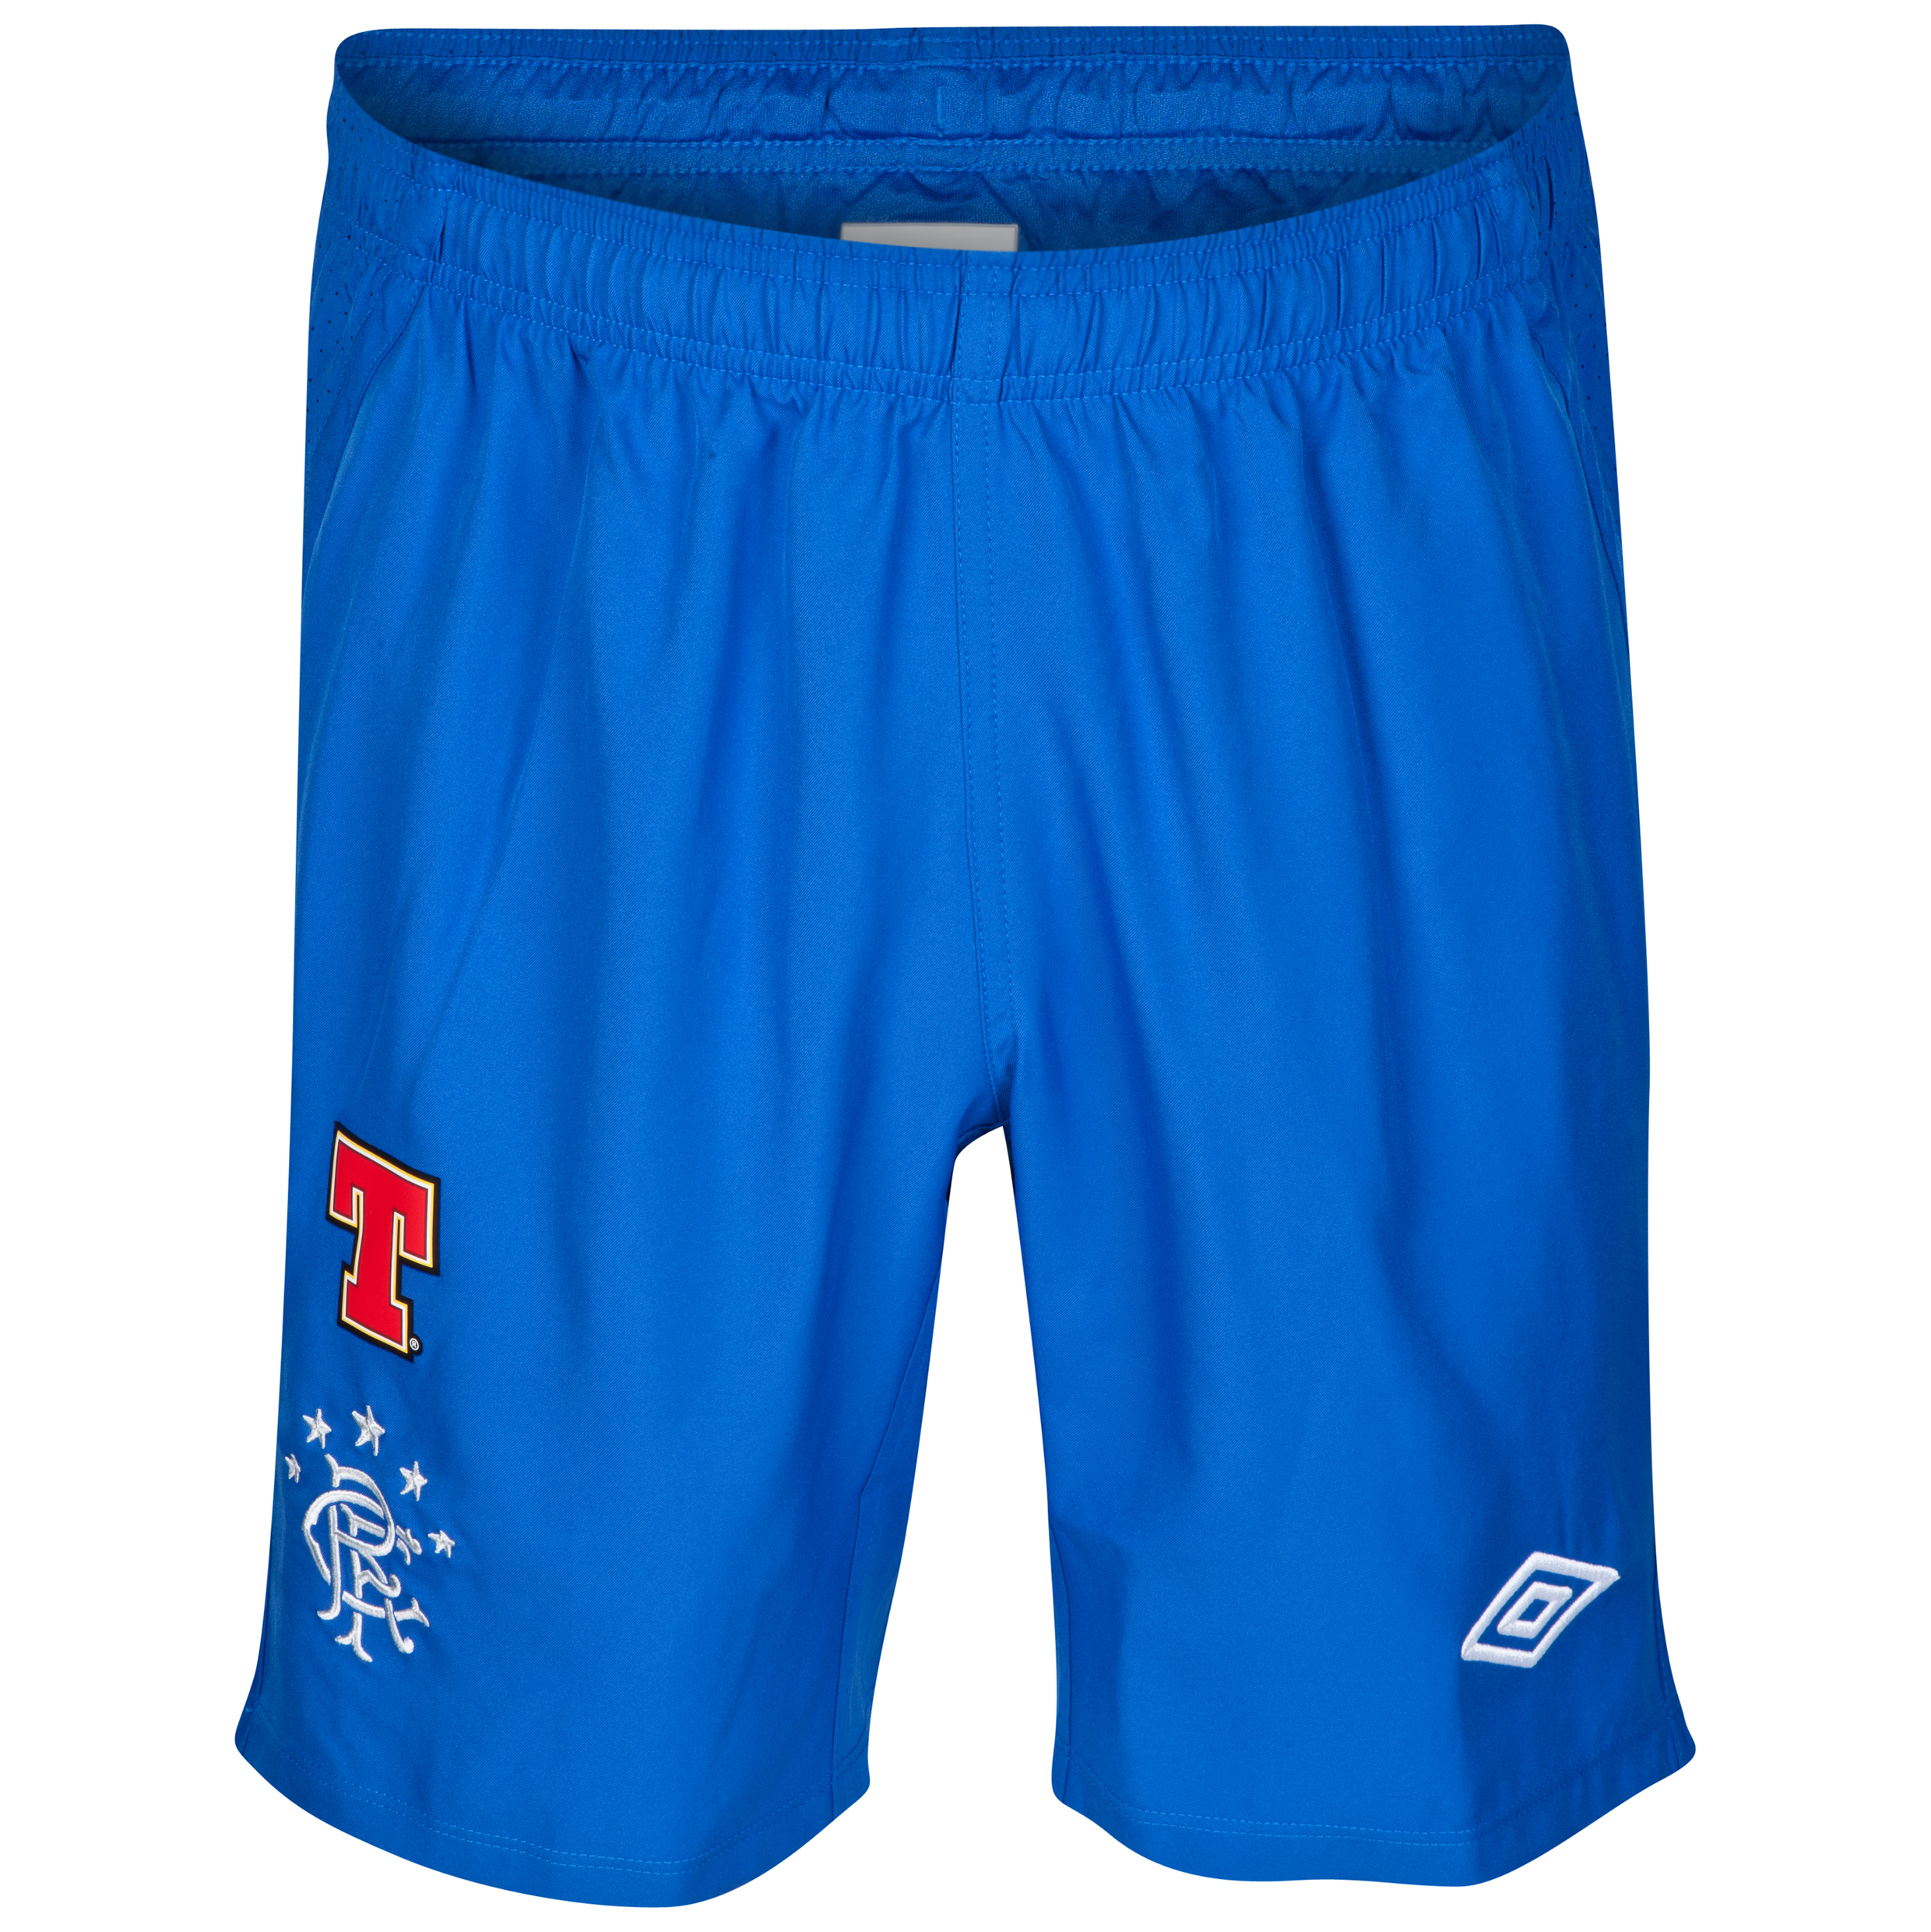 Glasgow Rangers Away Shorts 2012/13